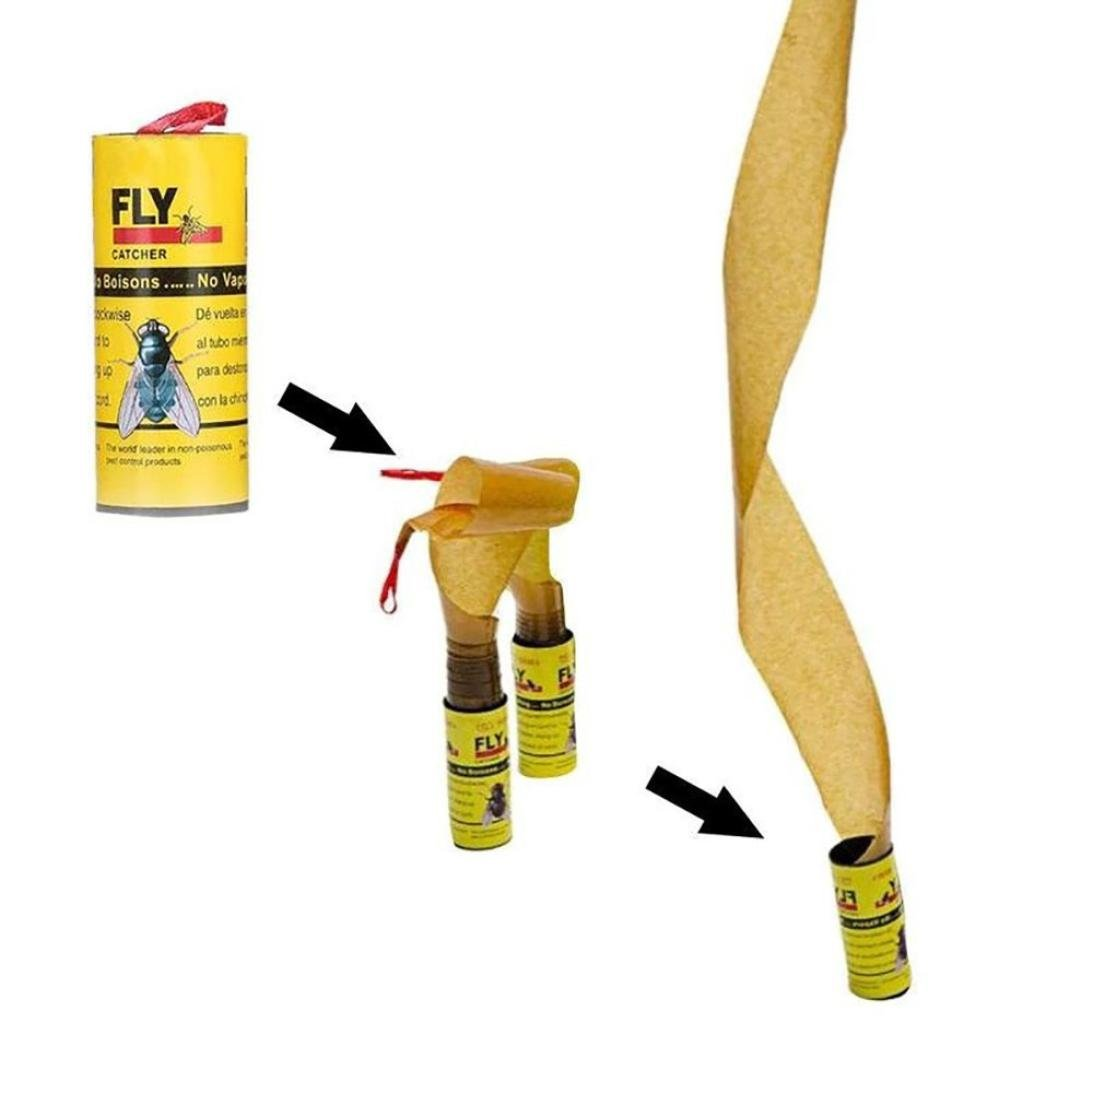 Fly Sticky Paper(Pack of 4), Eliminate Flies Insect Bug Glue Paper Trap